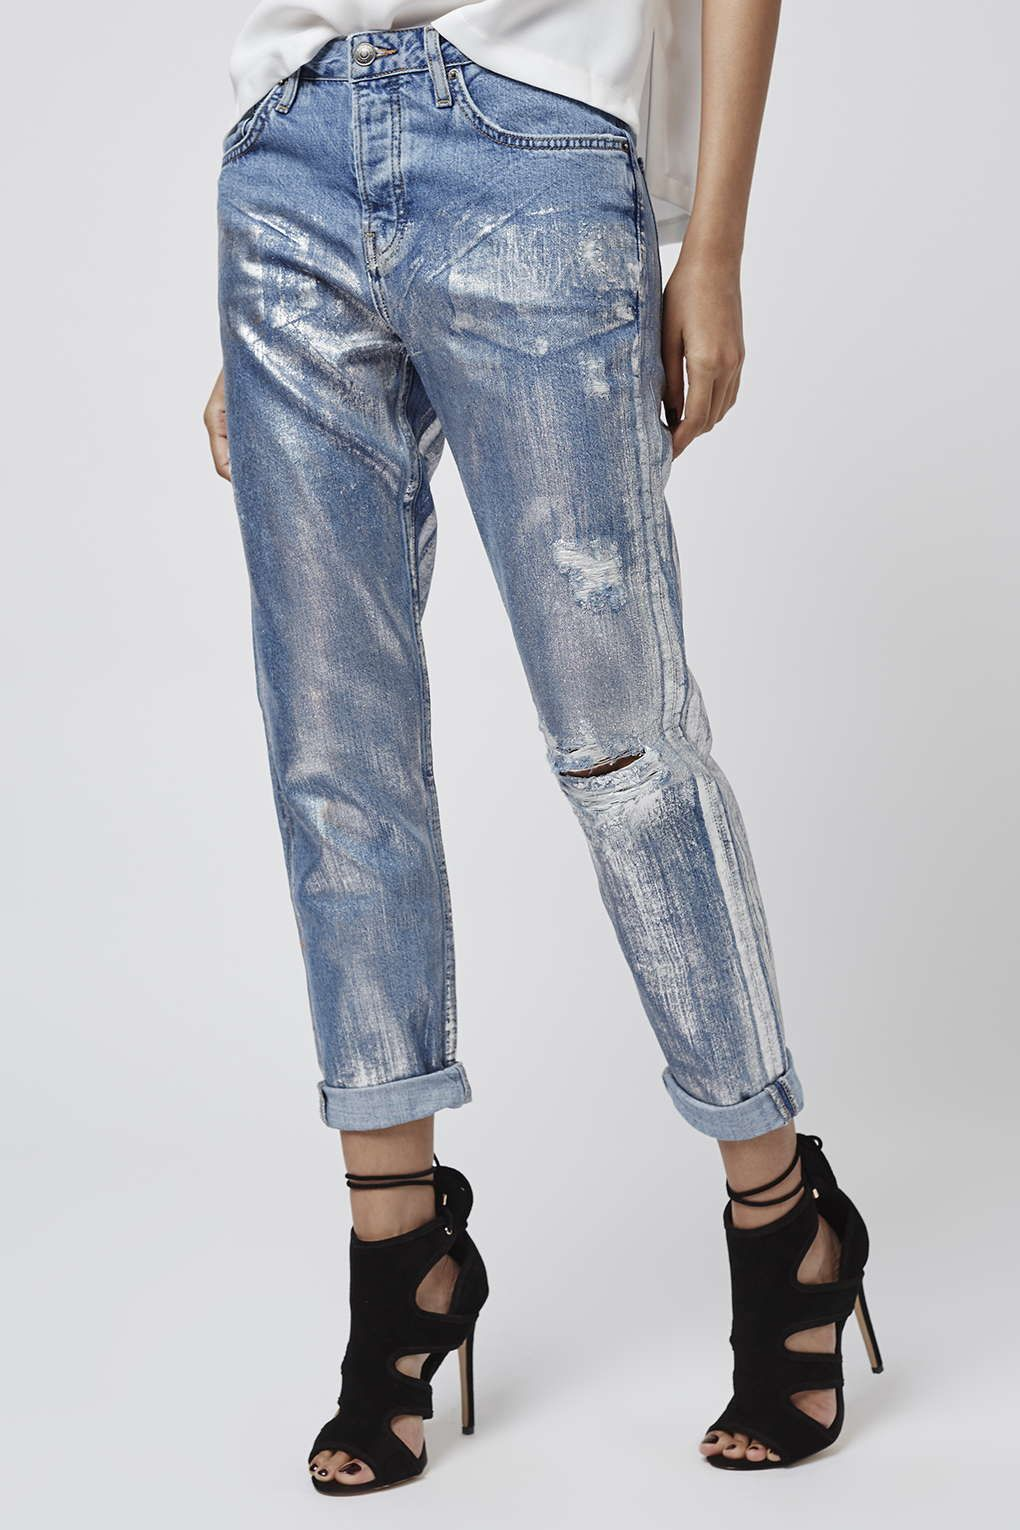 f39703f19 Denim just got a SERIOUS update with Metallic coating in a low slung  boyfriend fit. No accessories needed.  Topshop